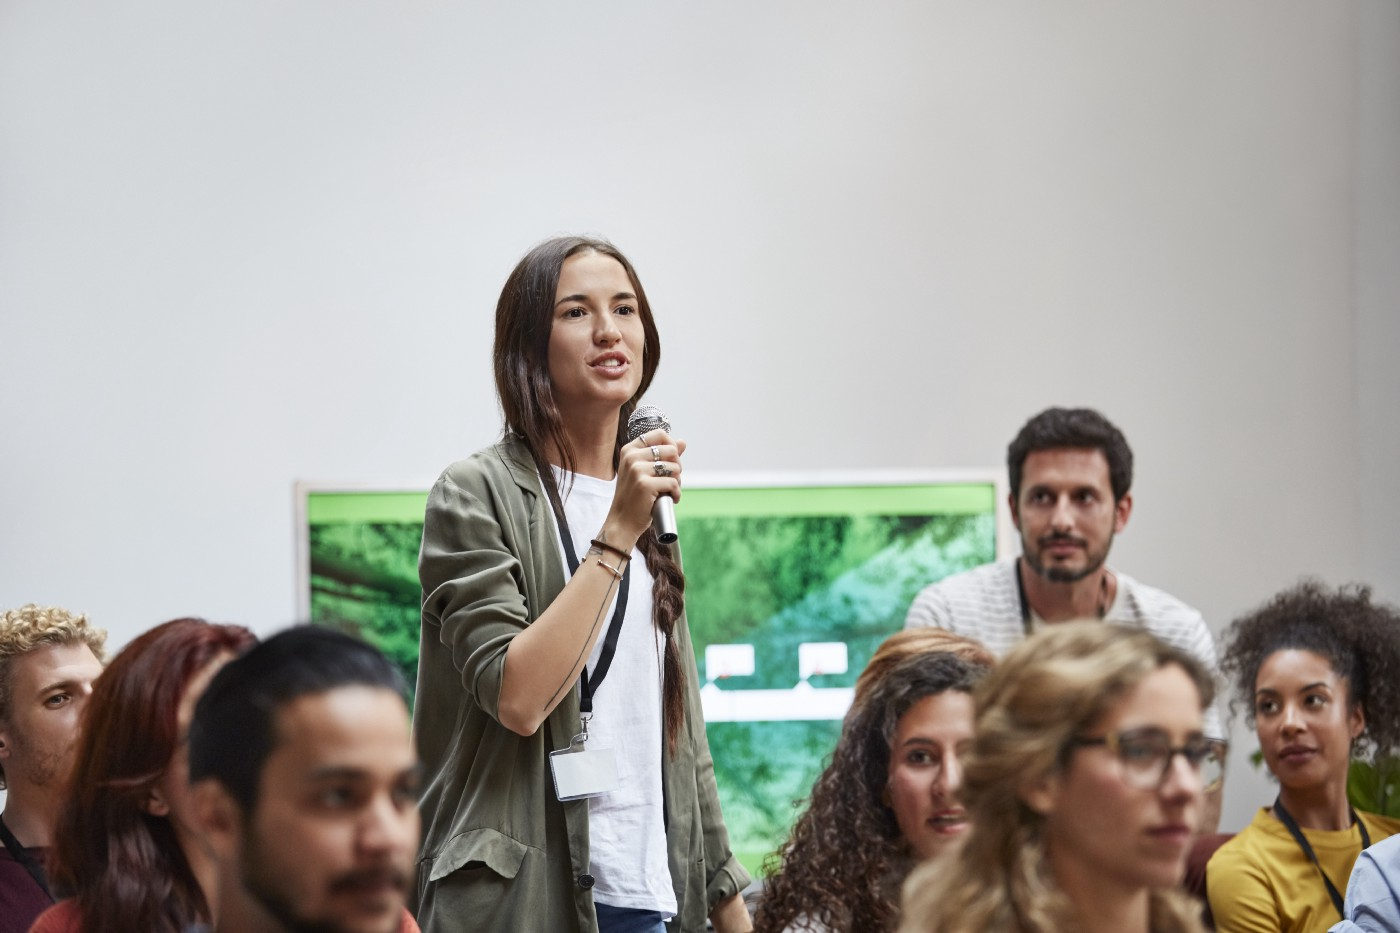 A woman speaks into a microphone, asking questions while standing amidst colleagues.